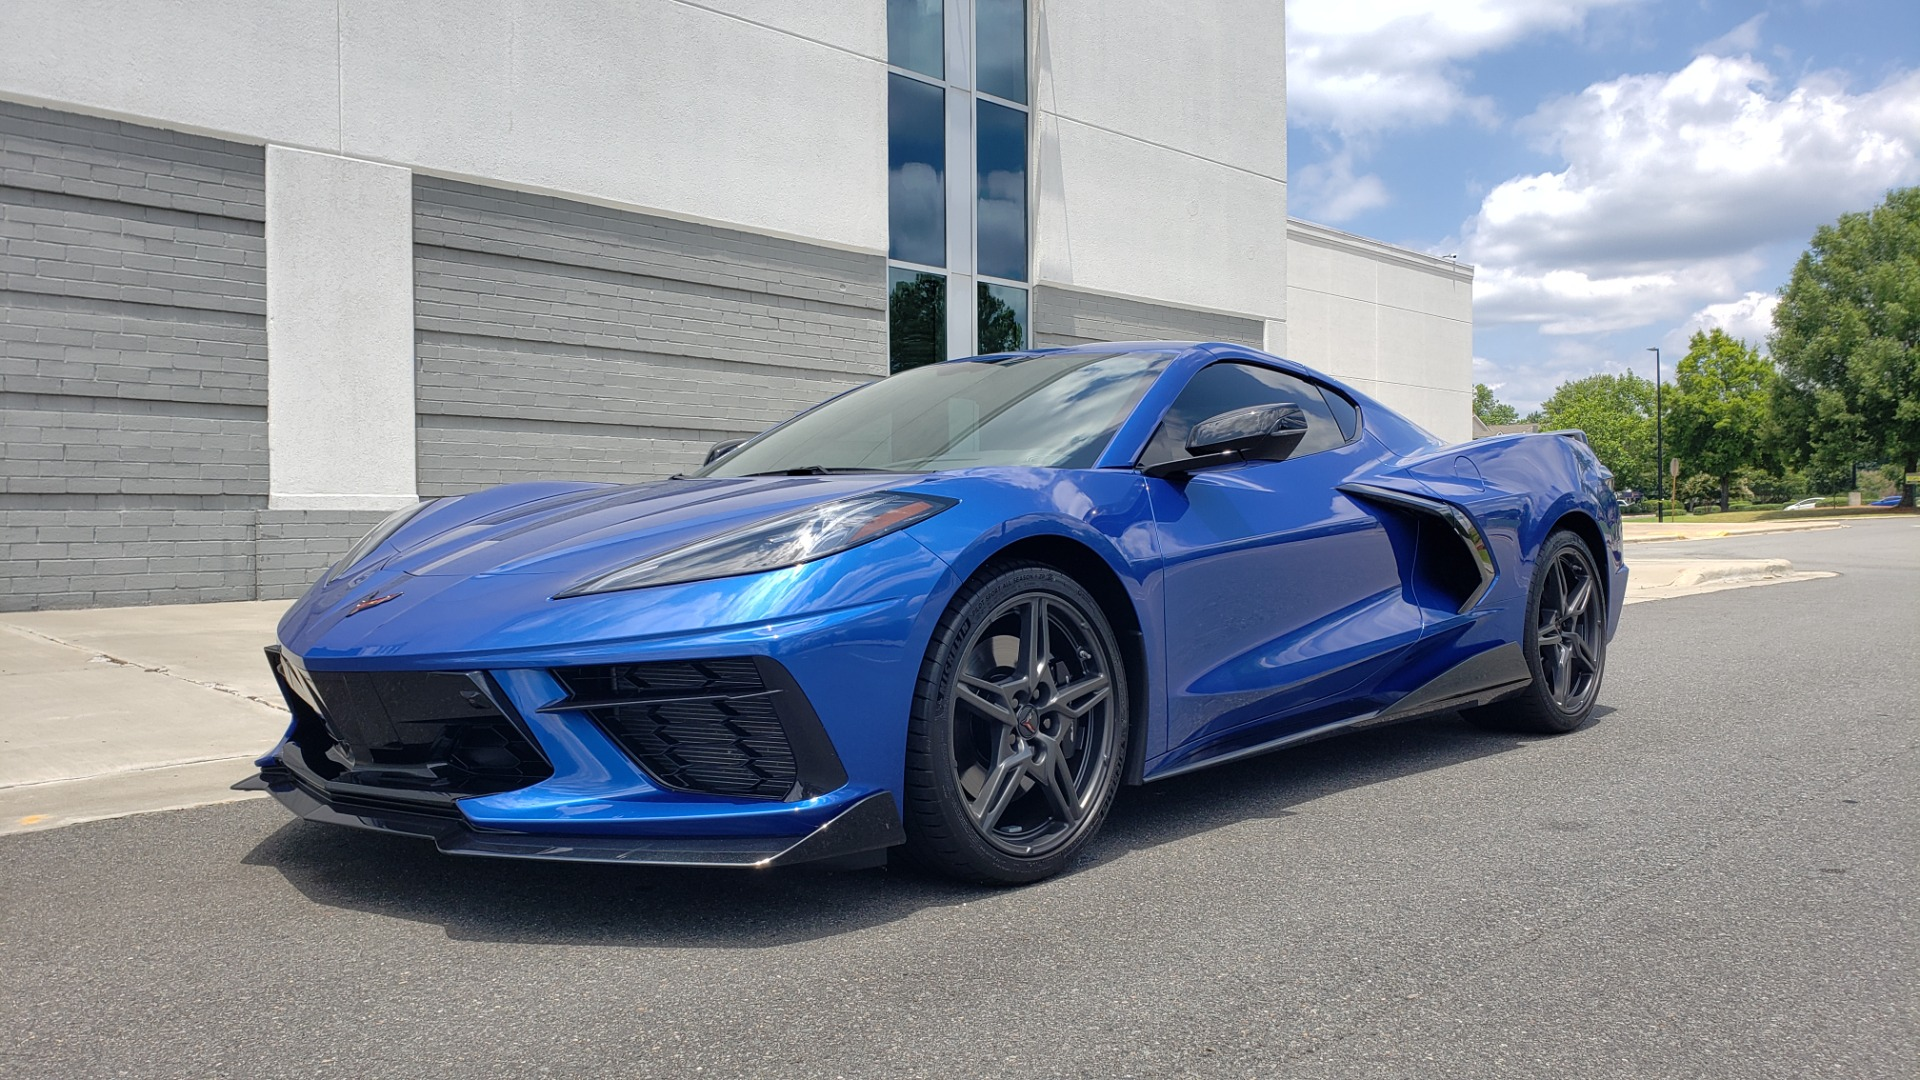 Used 2020 Chevrolet CORVETTE C8 STINGRAY COUPE 2LT / PERF & Z51 PKG / NAV / BOSE / 8-SPD AUTO / REARVIEW for sale Sold at Formula Imports in Charlotte NC 28227 1